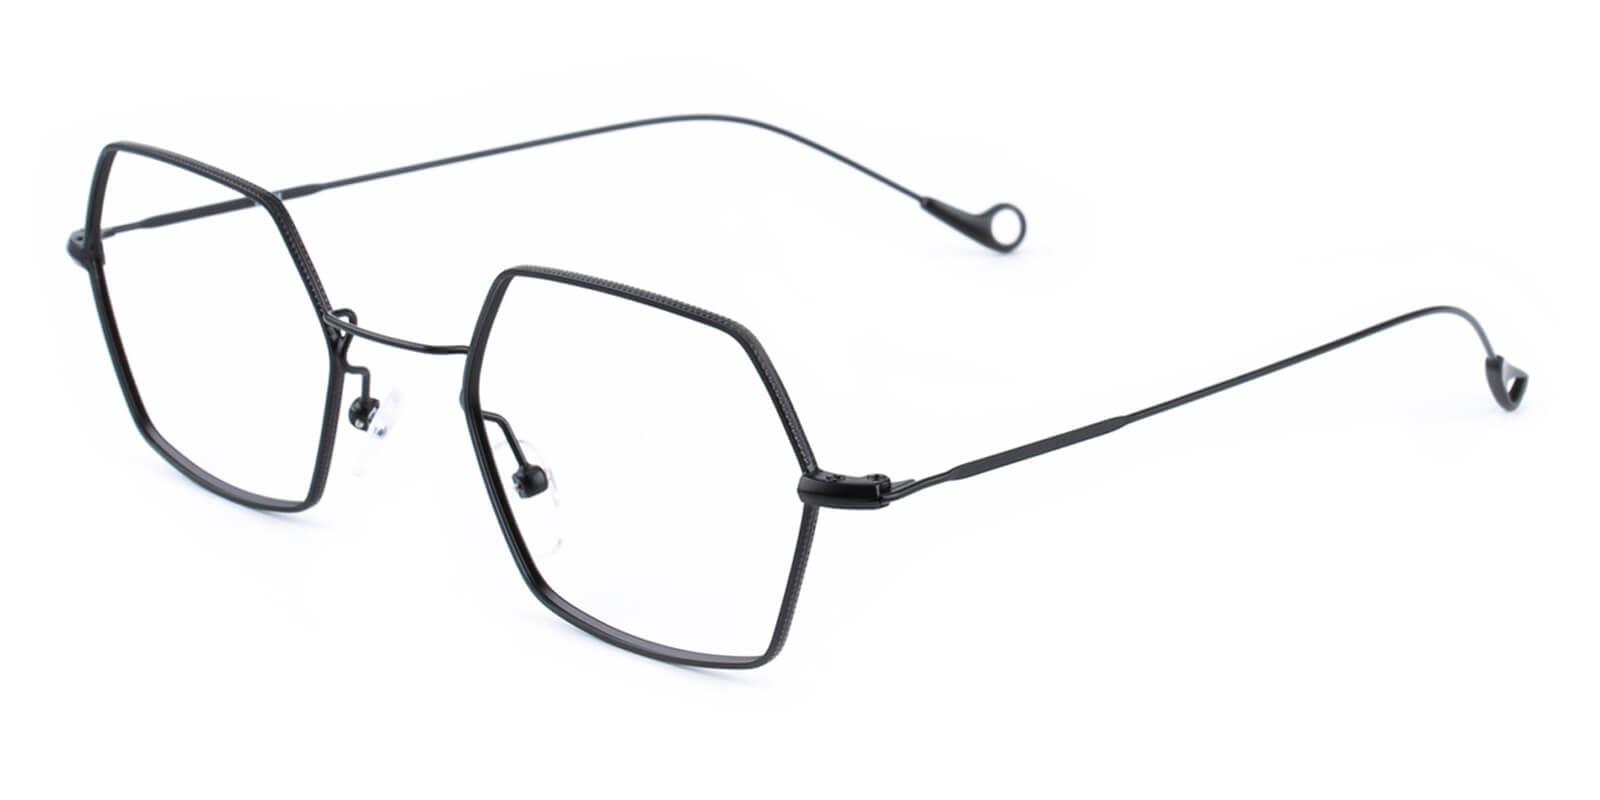 Goldien-Black-Geometric-Metal-Eyeglasses-additional1